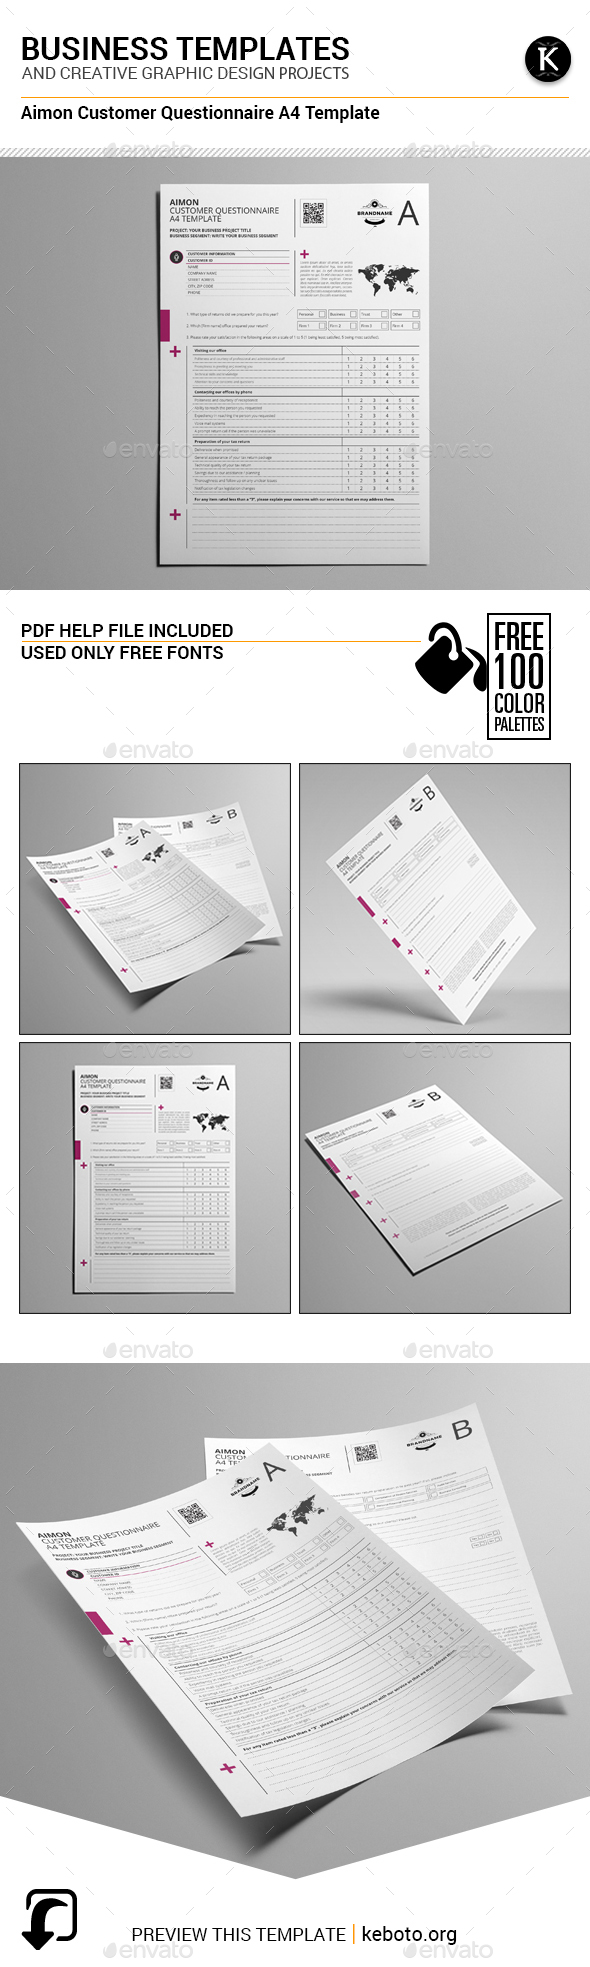 Aimon Customer Questionnaire A4 Template - Miscellaneous Print Templates